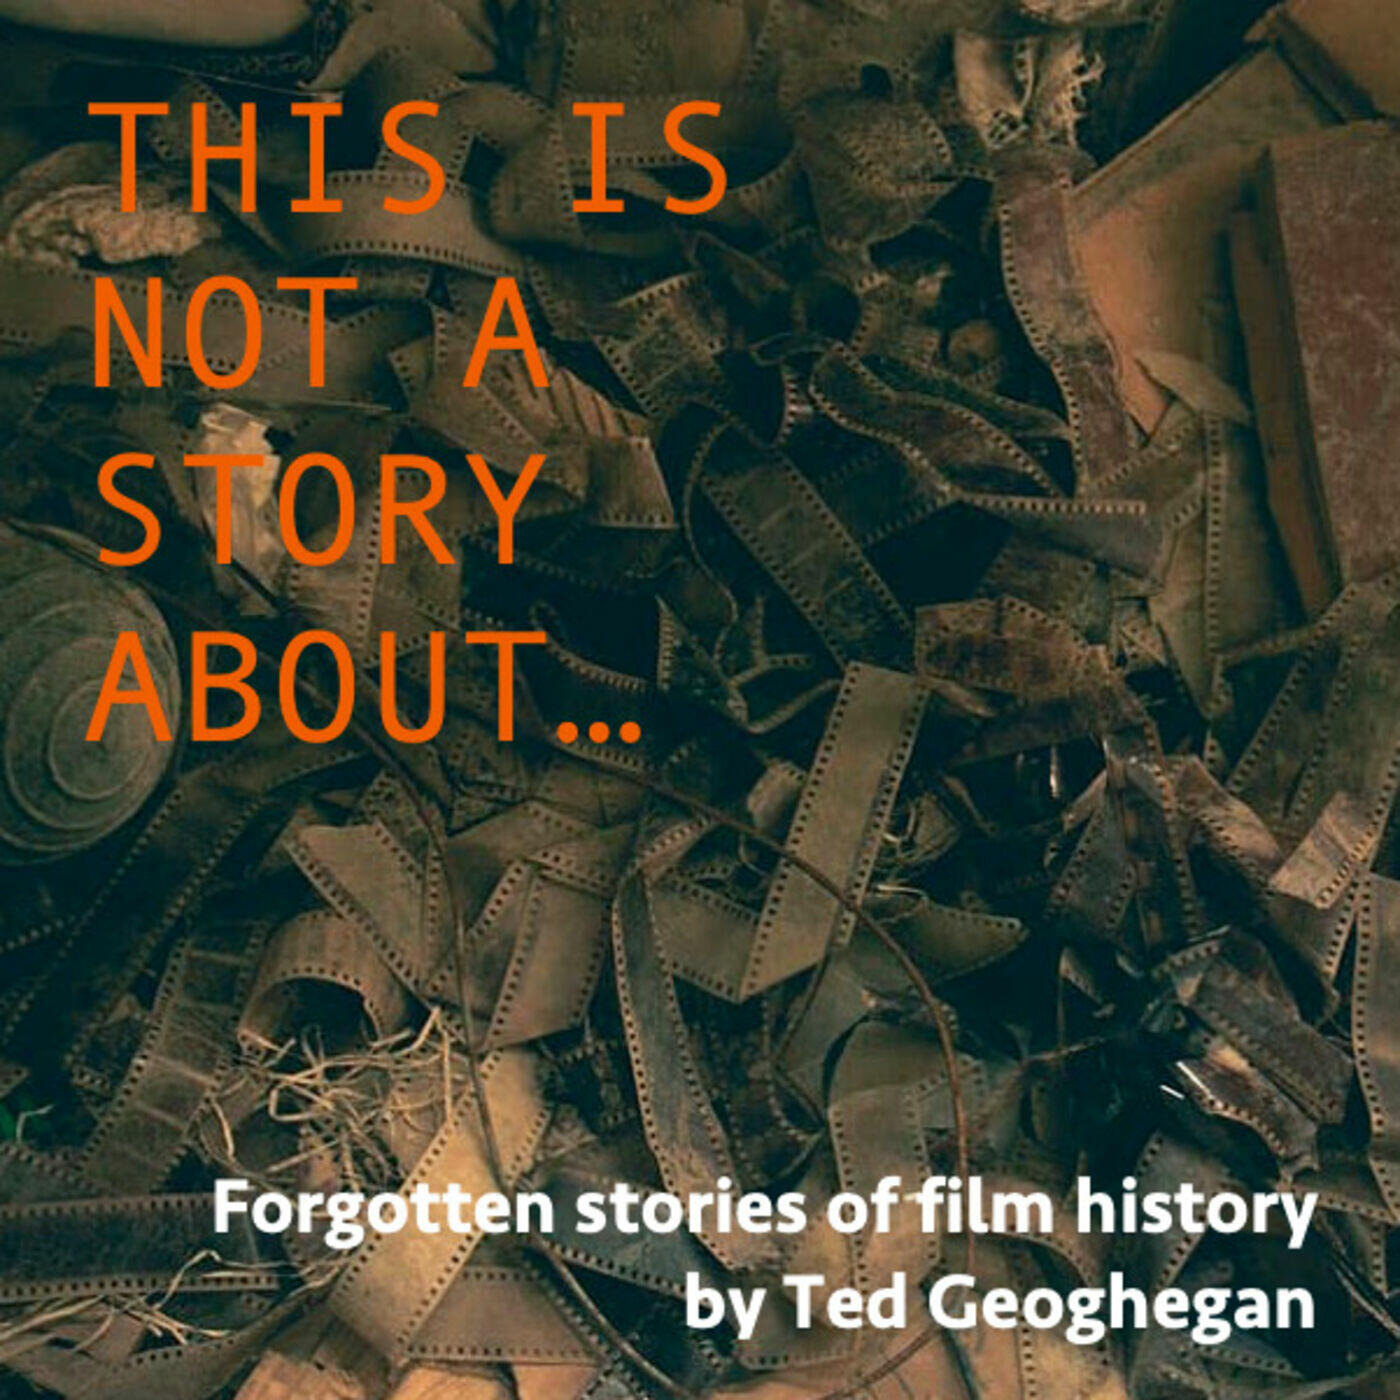 This is Not a Story About...